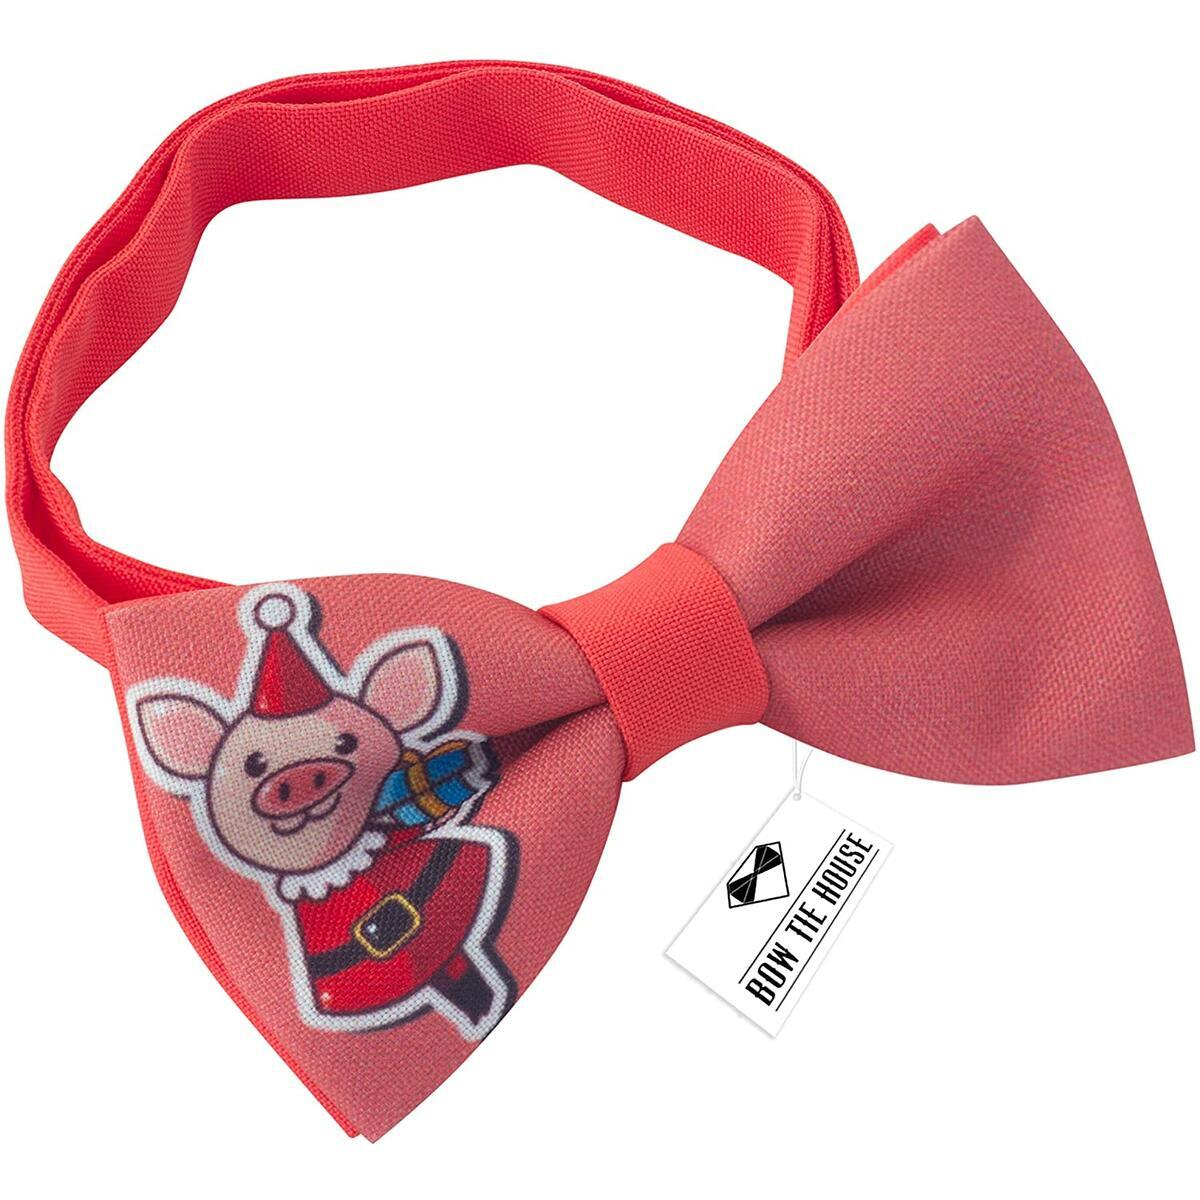 New Year Christmas bow tie pattern pre-tied, by Bow Tie House (Medium, Red Pig)